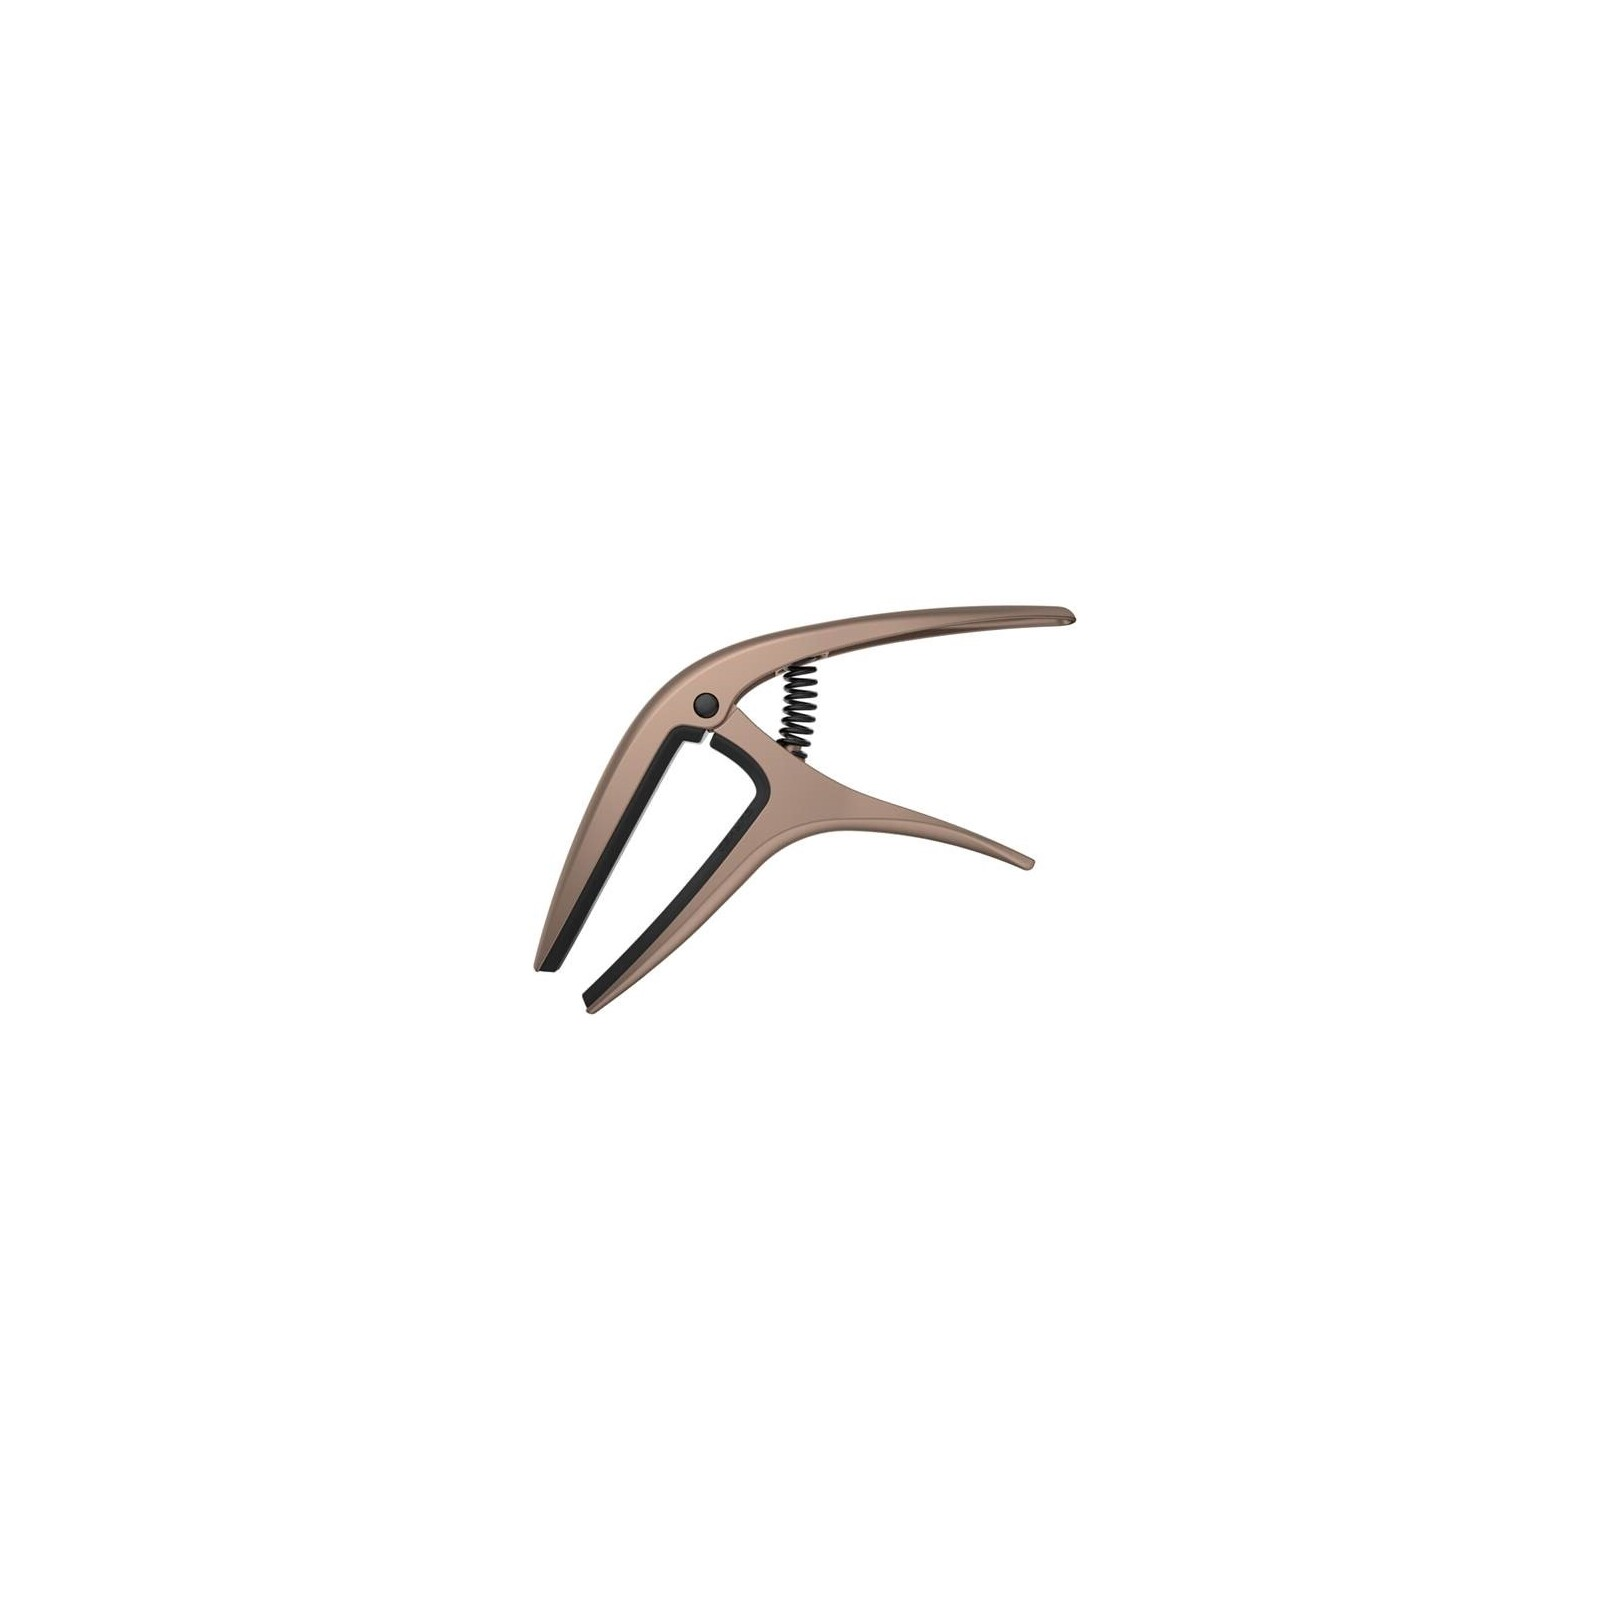 ERNIE BALL AXIS CAPO PEWTER E9608